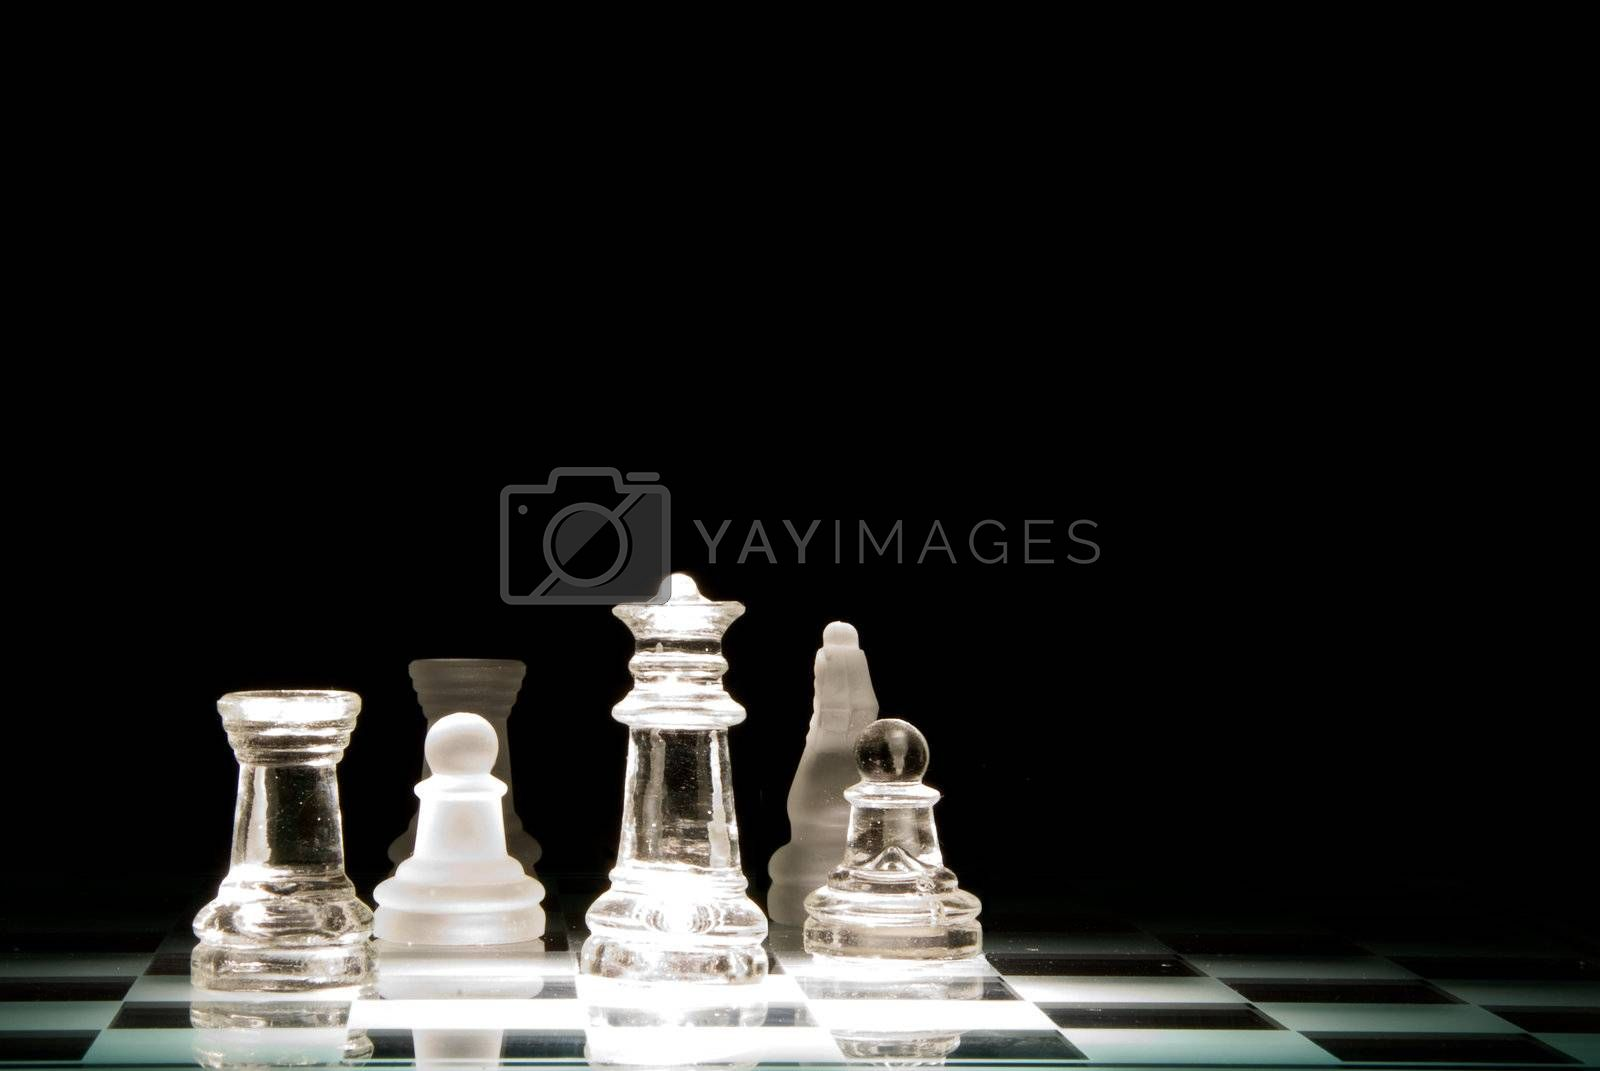 A challenging game of chess on a glass board.